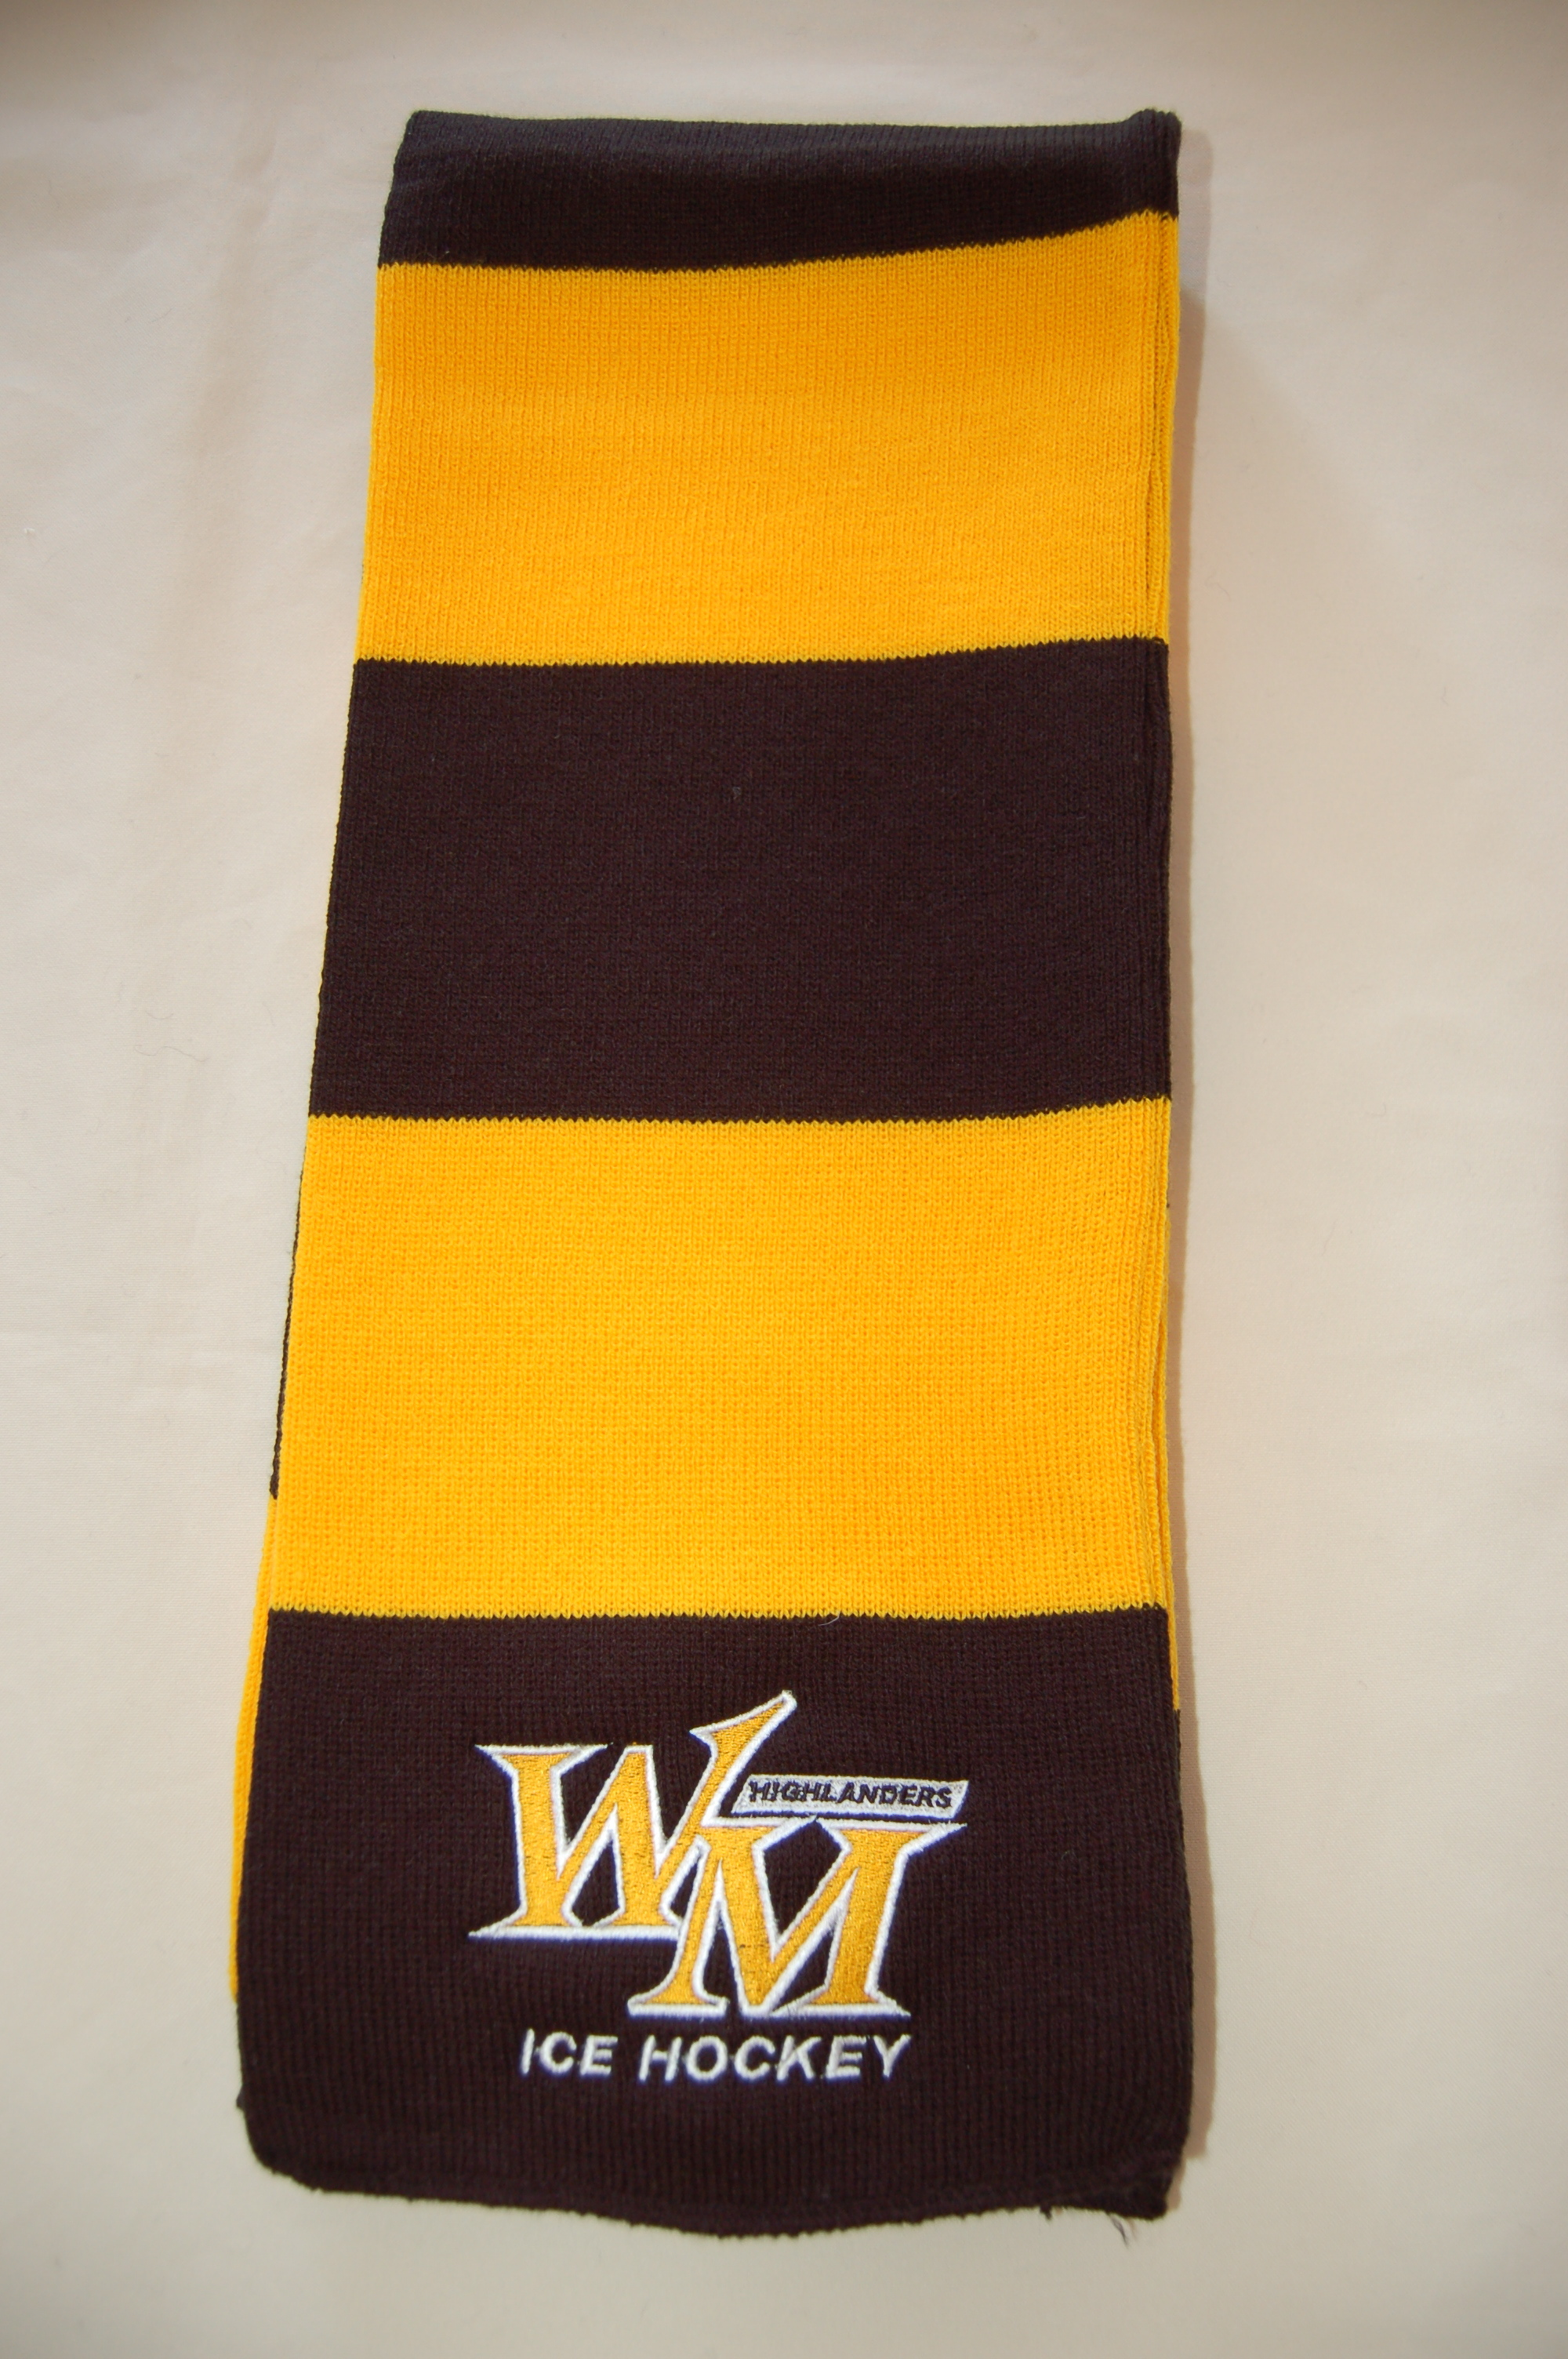 West Milford Highlanders Ice Hockey embroidered scarf.